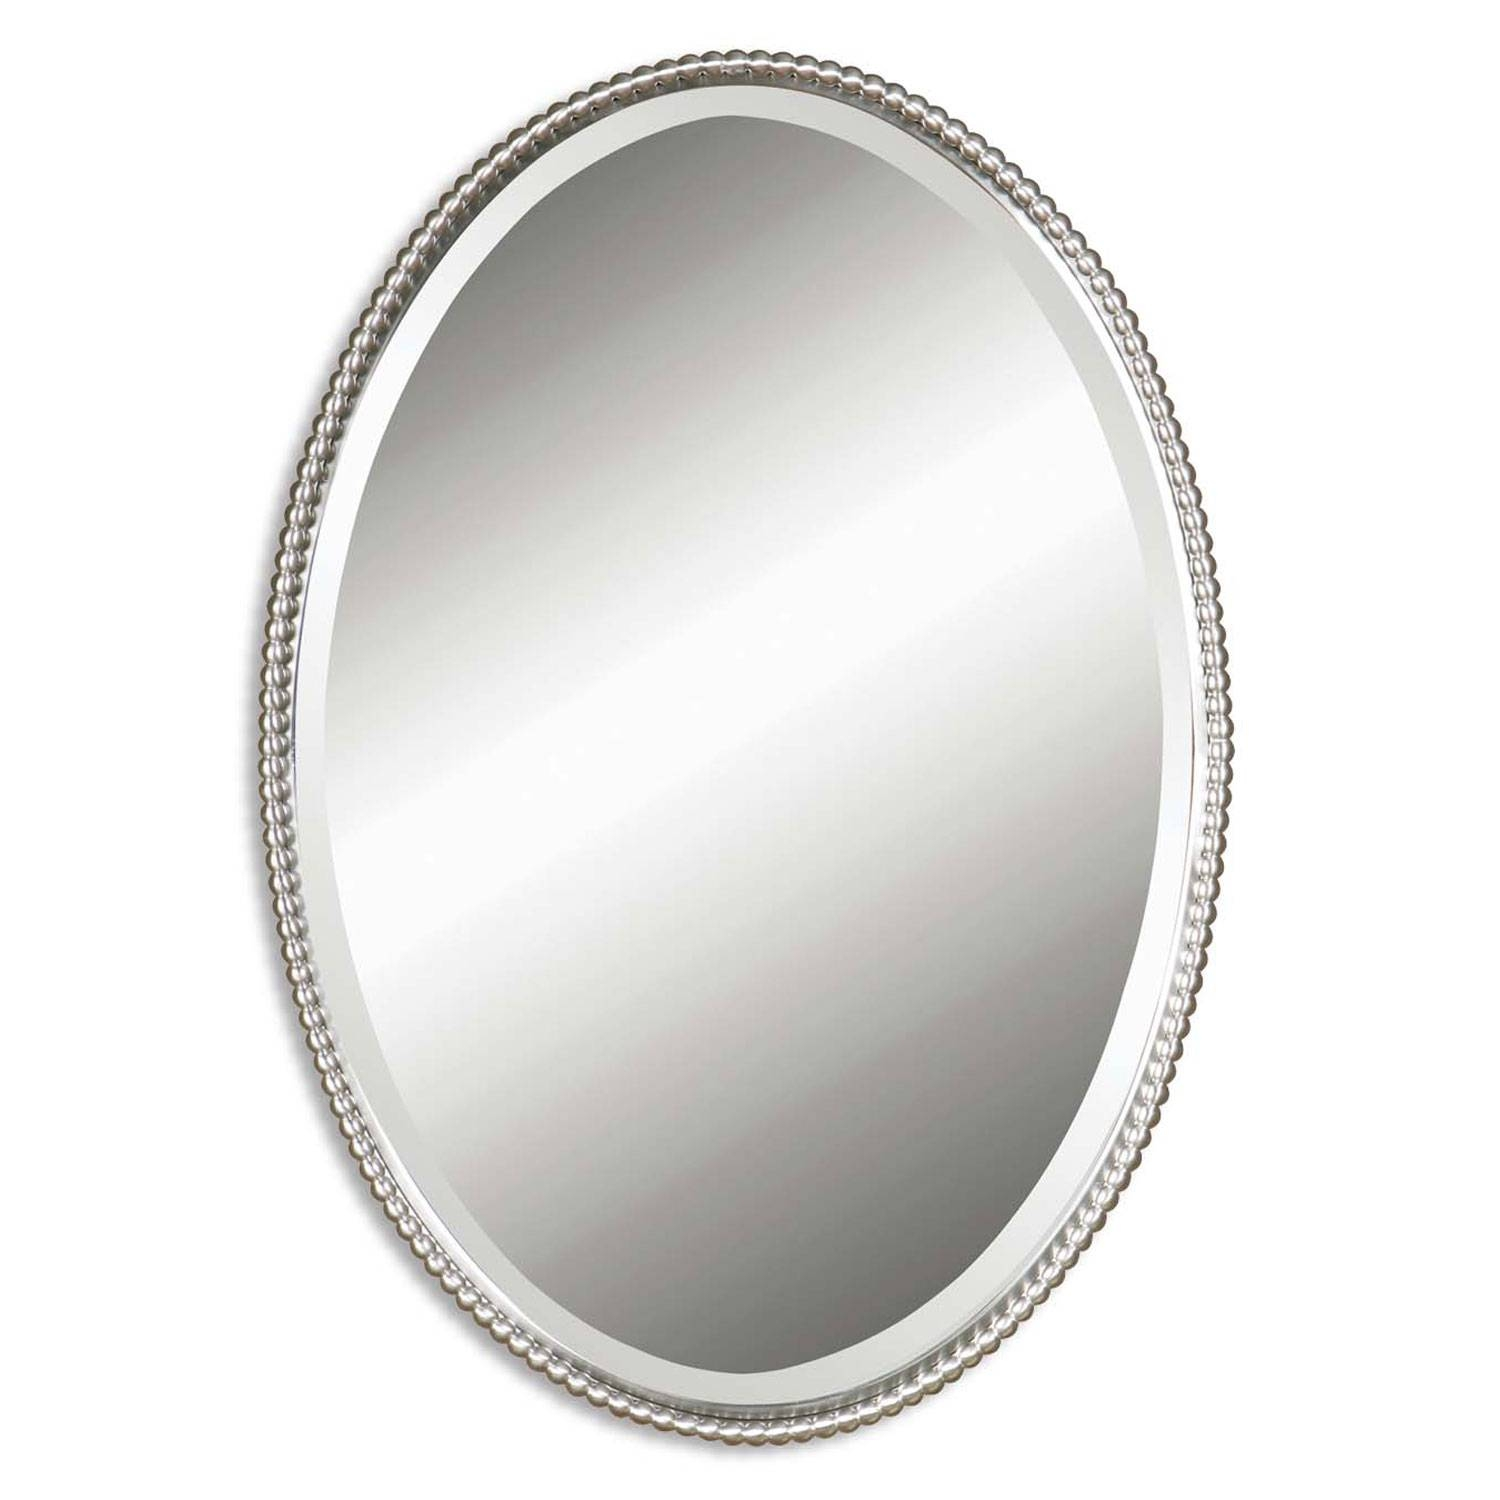 Oval Mirrors | Bellacor within Long Oval Mirrors (Image 13 of 15)